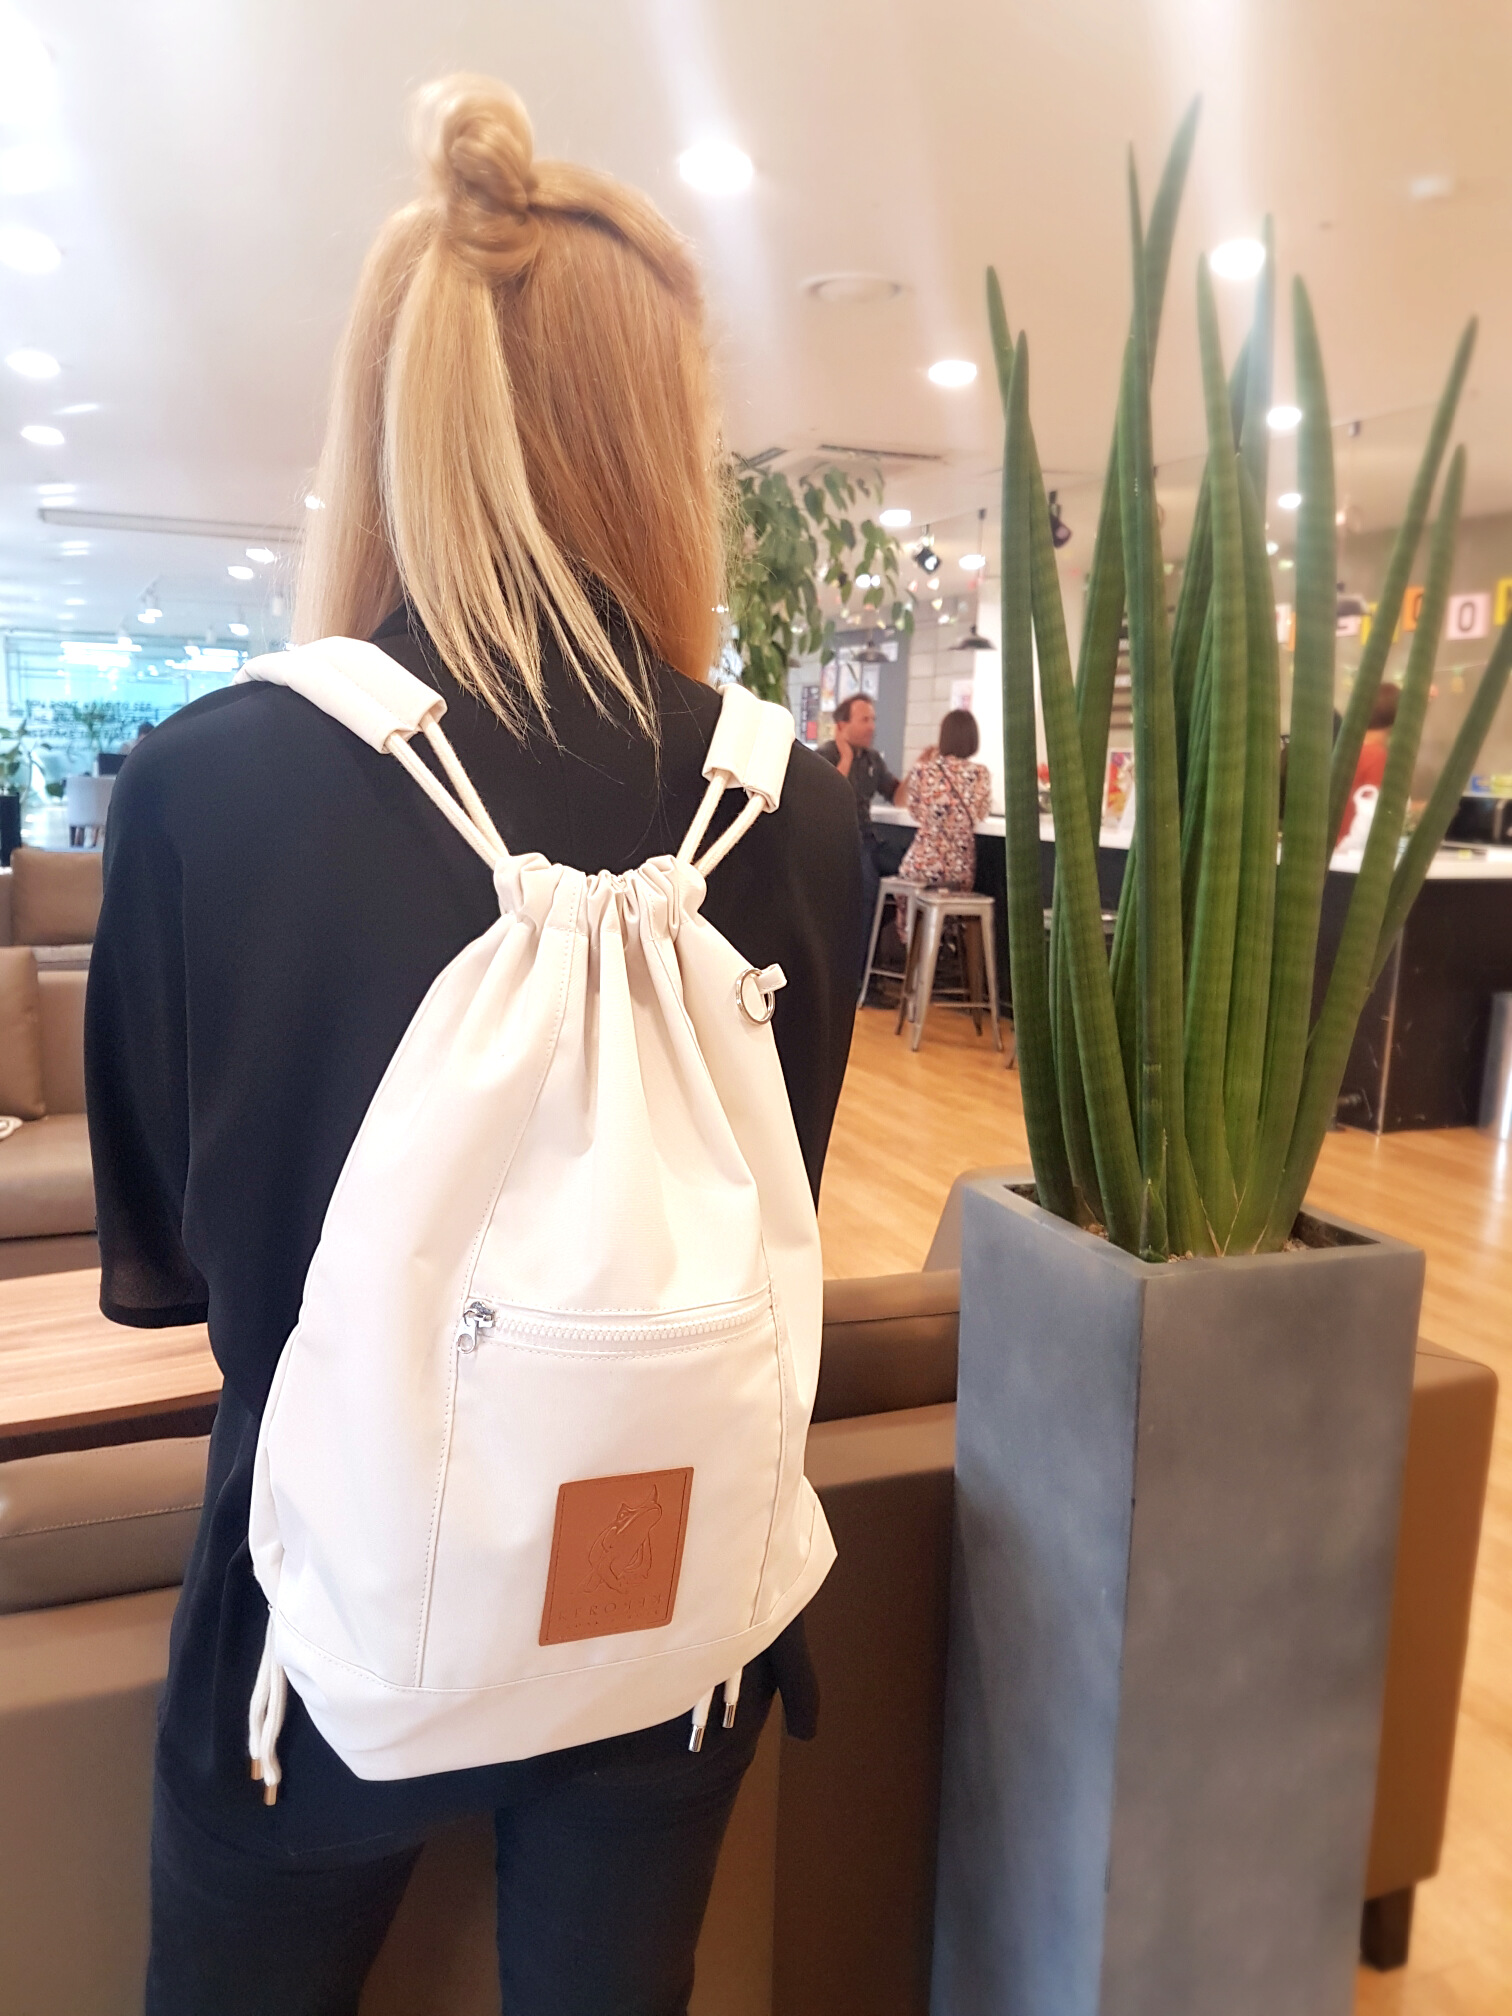 Designer Milla with the backpack.